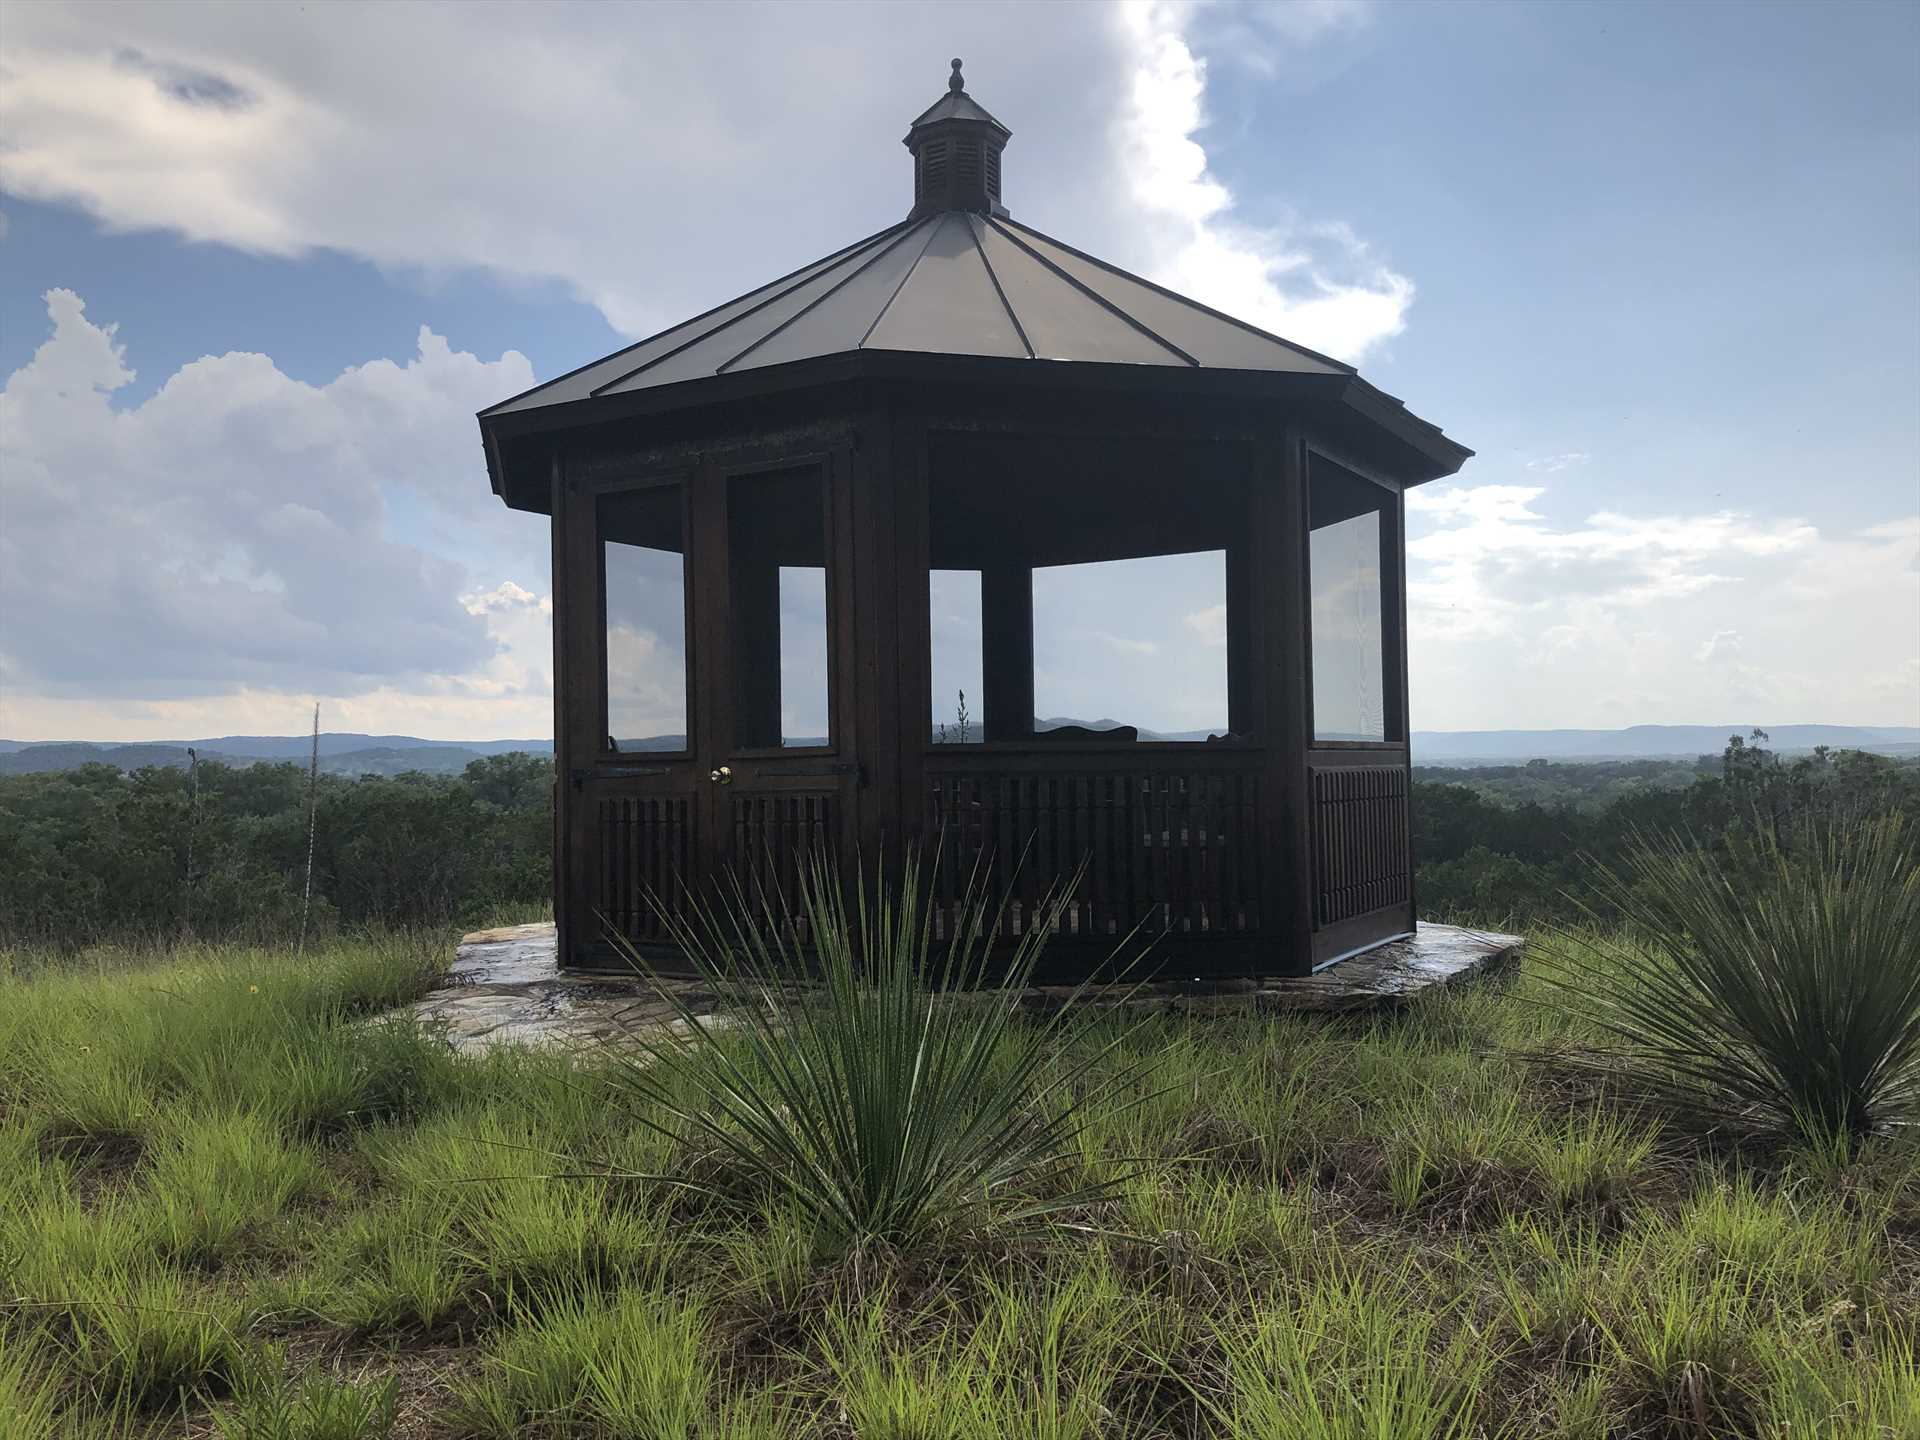 This hilltop gazebo is a prime spot for conversation, relaxation, wildlife watching, and stargazing!